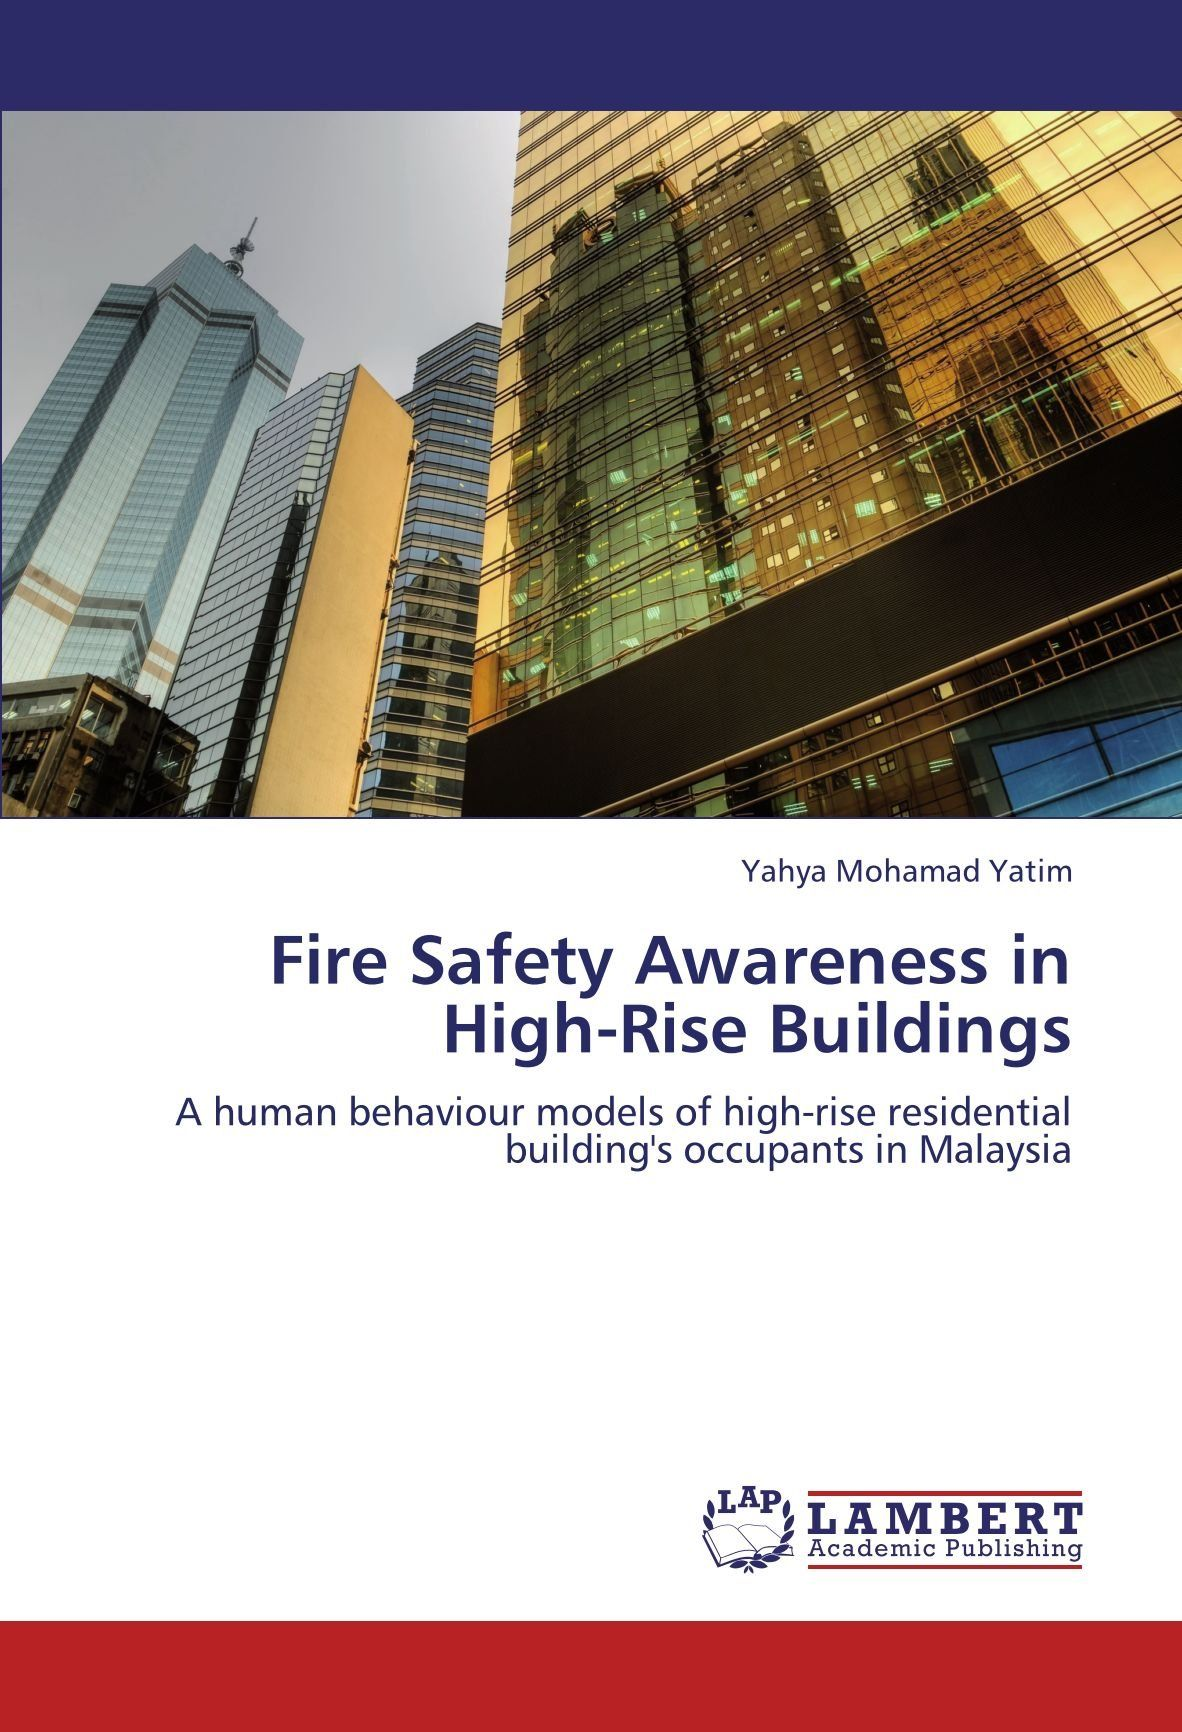 Pin by Shikin Razali on Buku General JBPM Fire safety